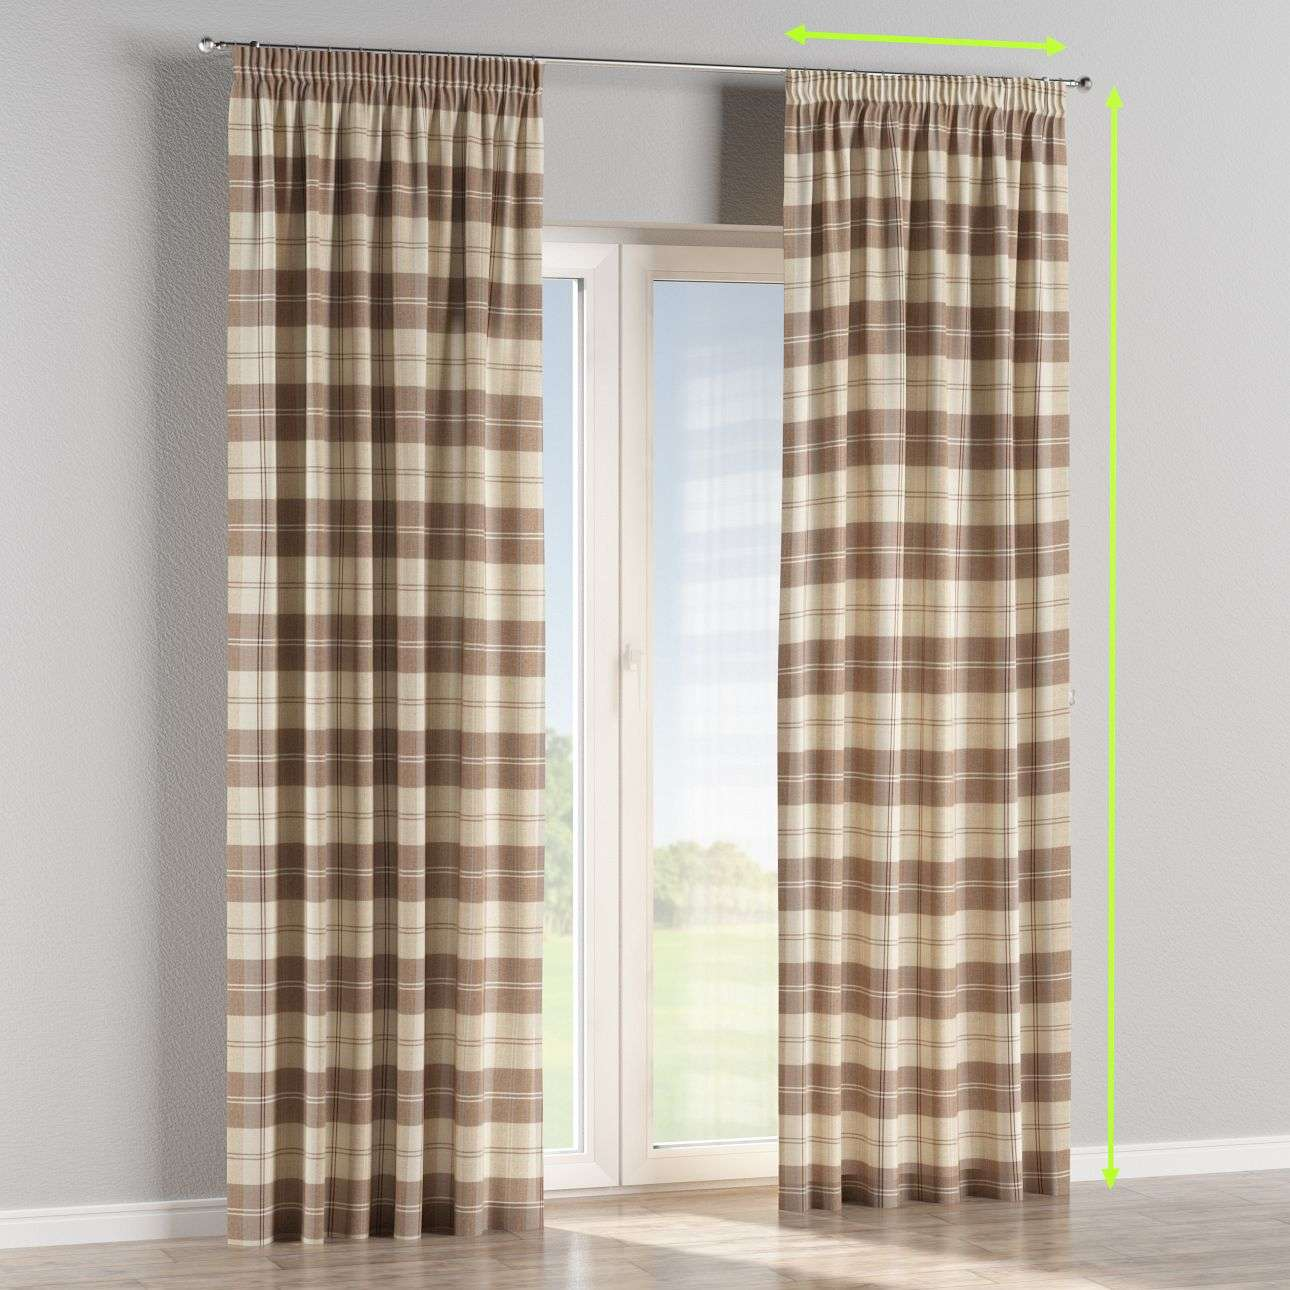 Pencil pleat lined curtains in collection Edinburgh , fabric: 115-80